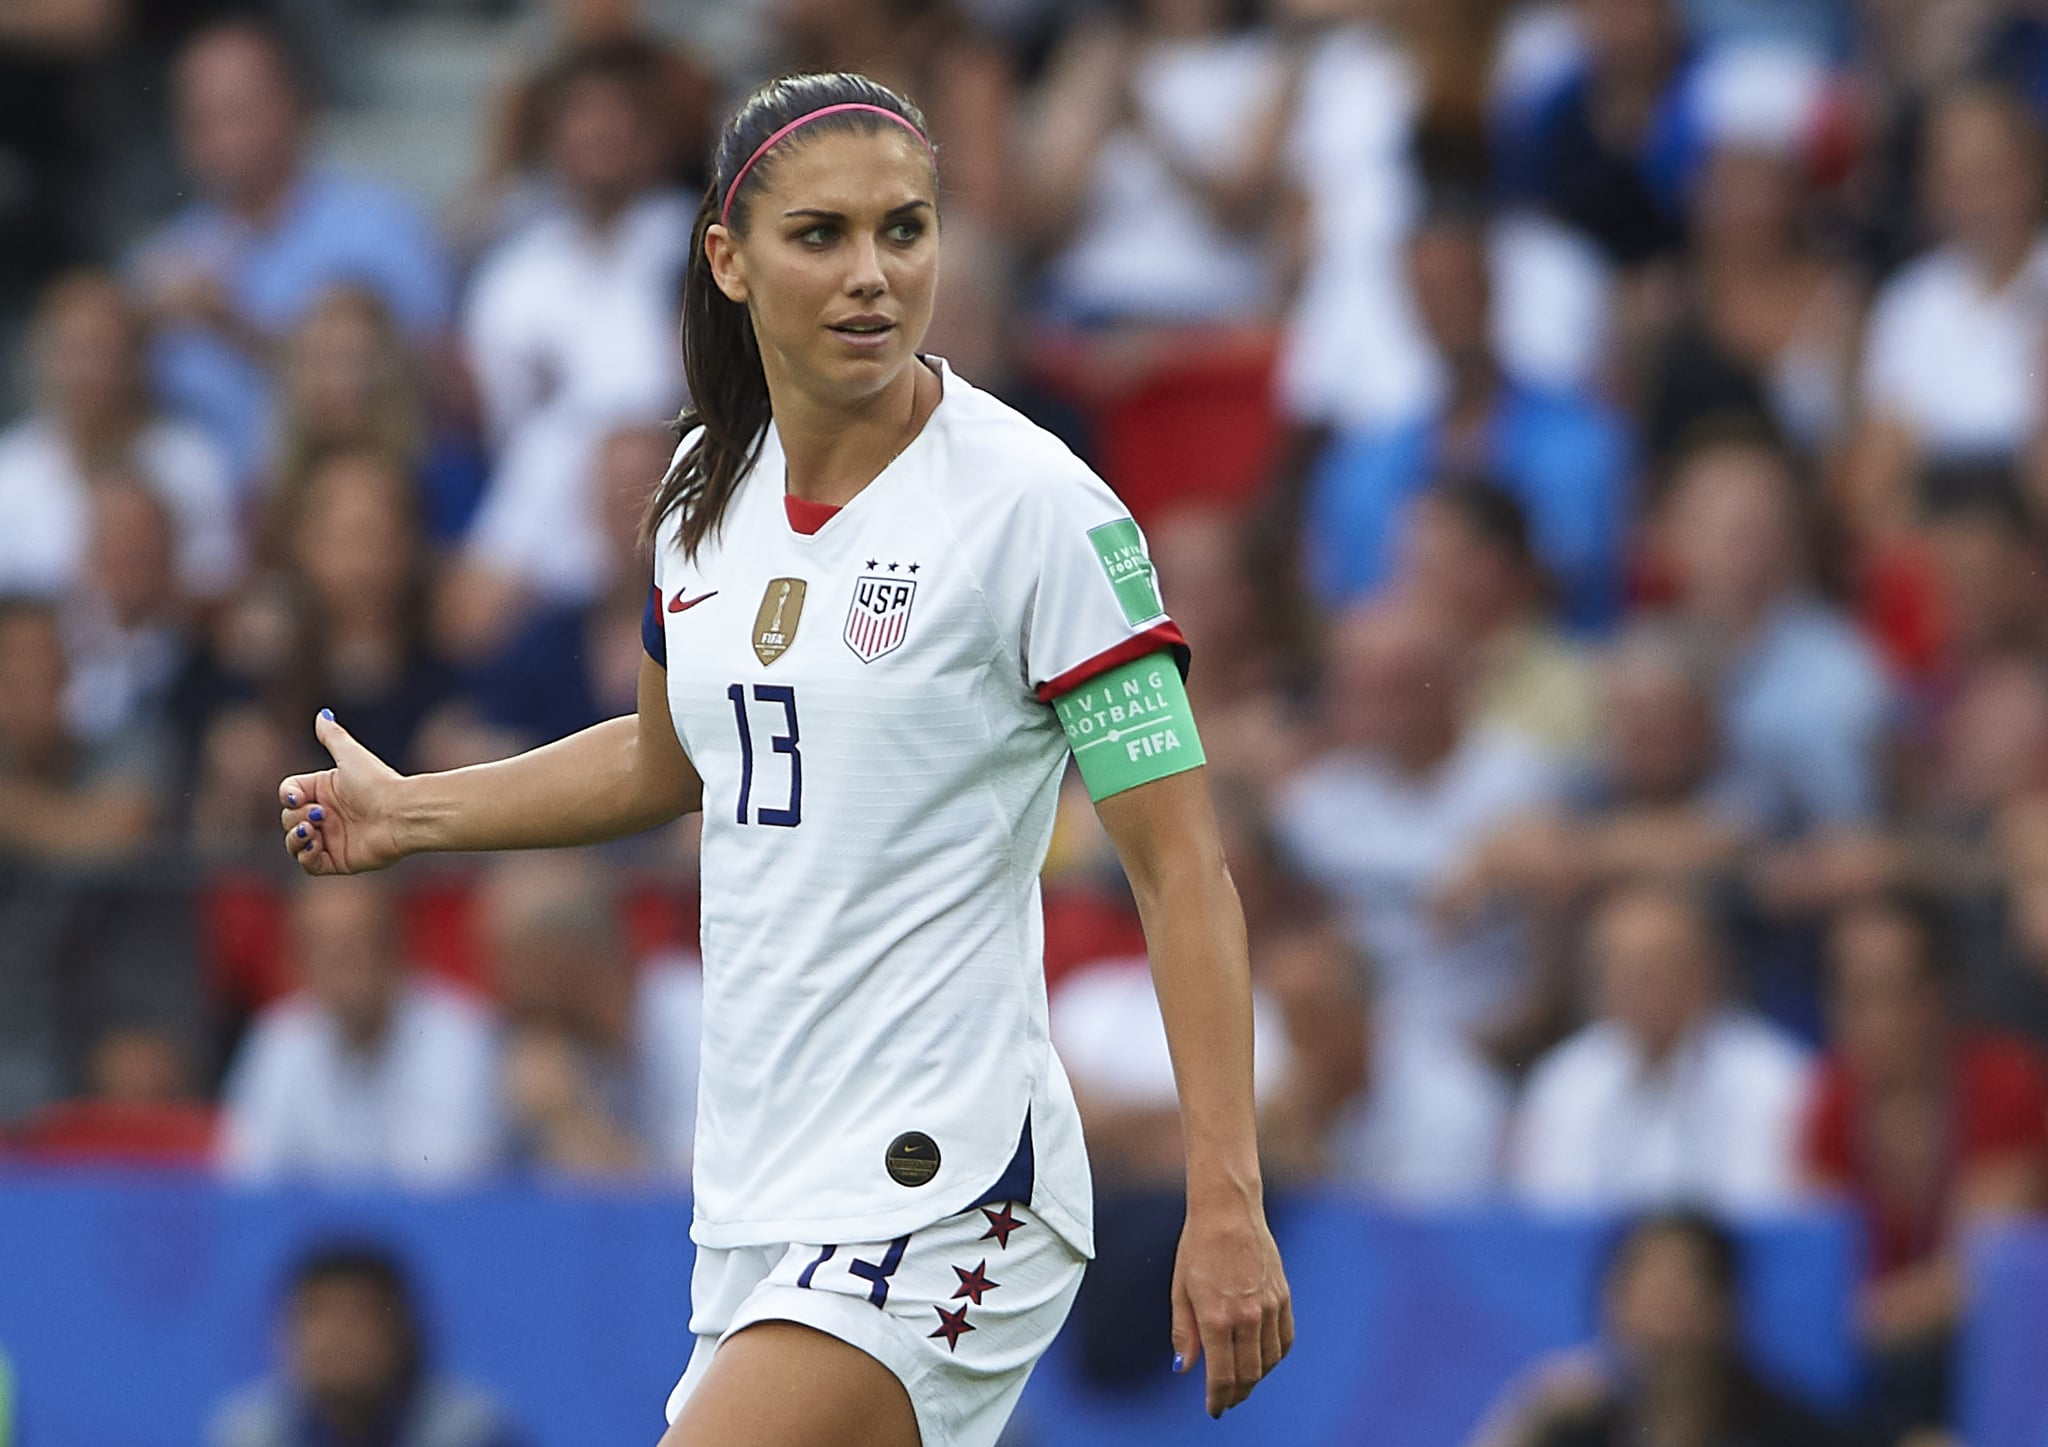 6c7ca7af1 We're two games away from the FIFA Women's World Cup Final, and every eye,  ear, iPhone camera, and Twitter account are turned toward the US Women's  National ...